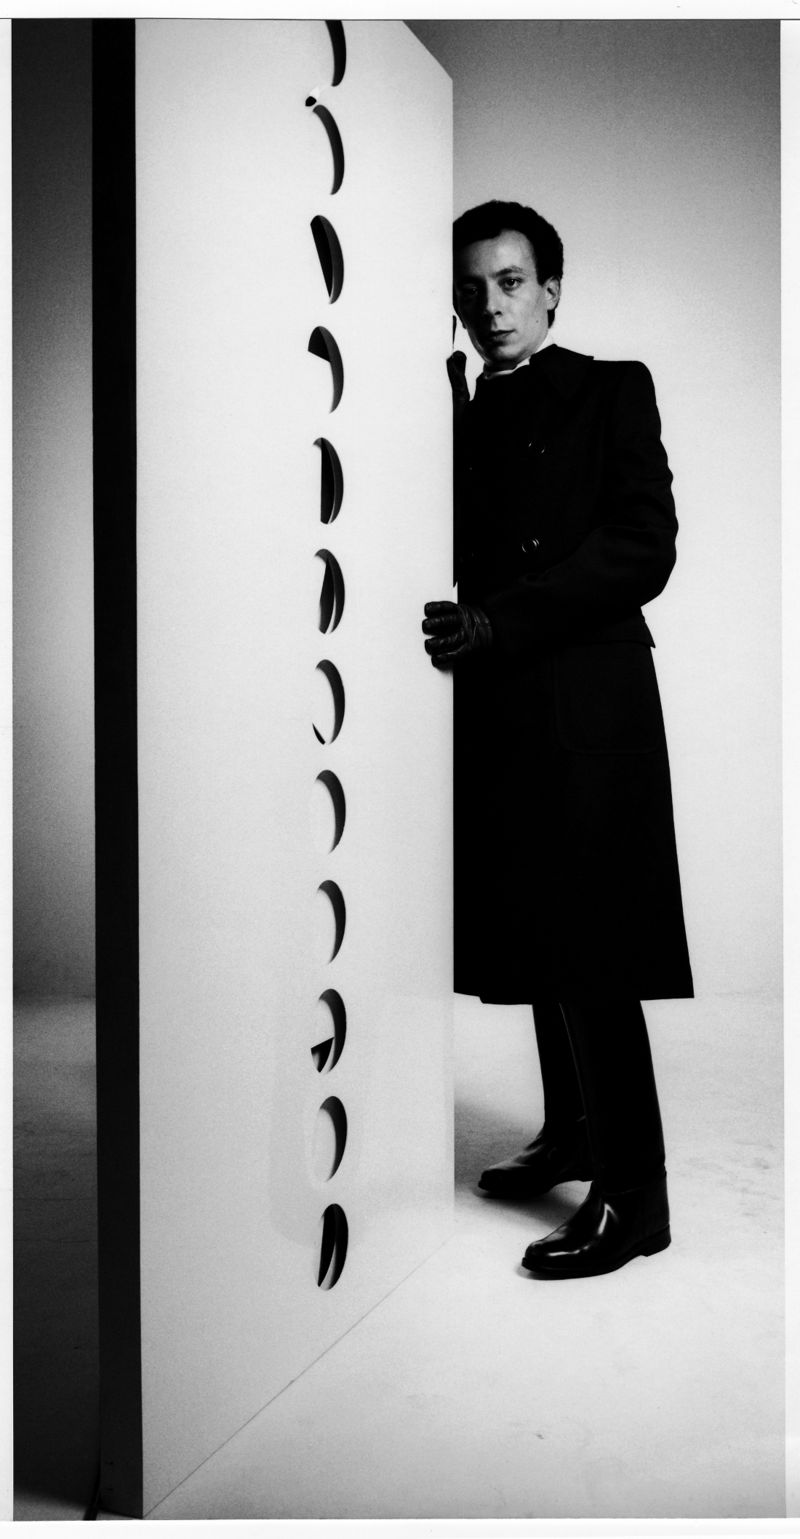 Paolo Scheggi, Uomo Vogue, 1967. Photo Ugo Mulas -® Ugo Mulas Heirs. All rights reserved. Courtesy Archivio Ugo Mulas ÔÇô Galleria Lia Rumma